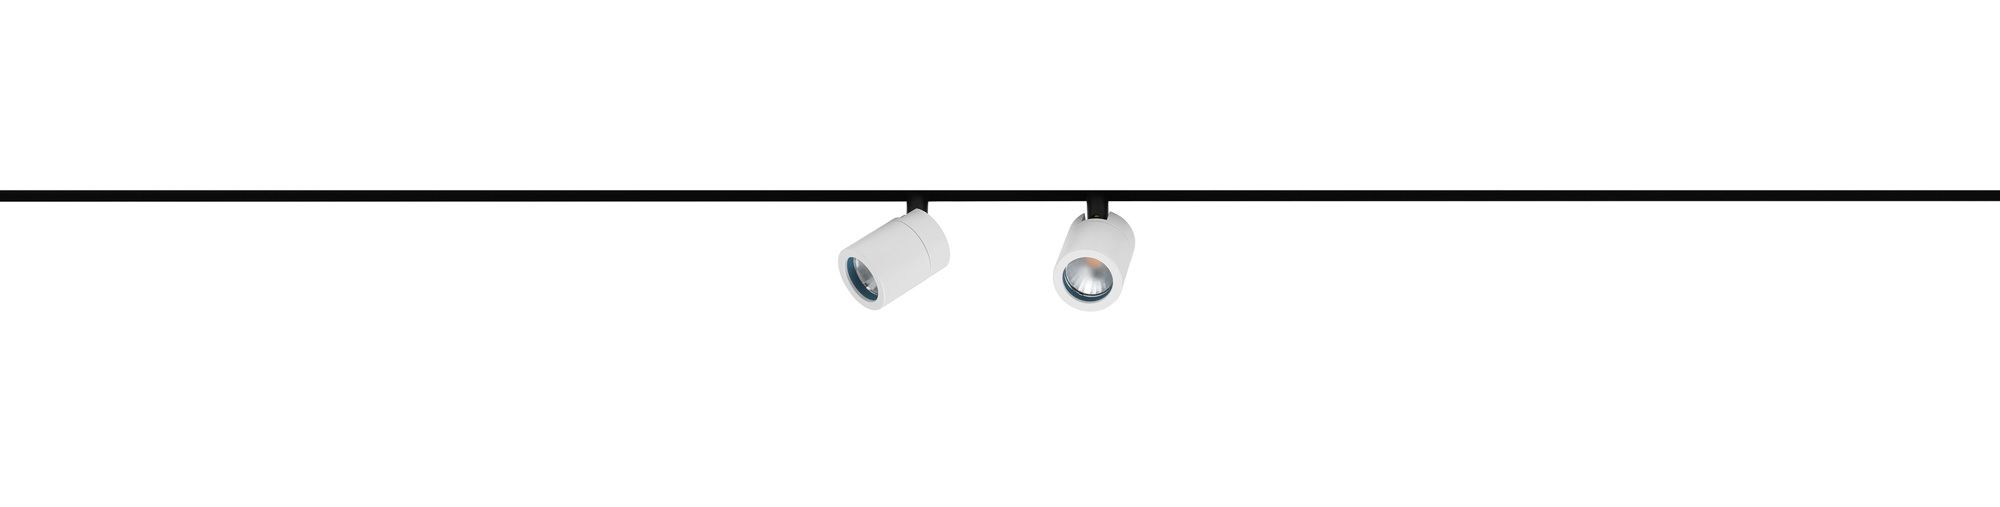 Spot Micro 48 Rt Features Two Adjule Led Spots For The